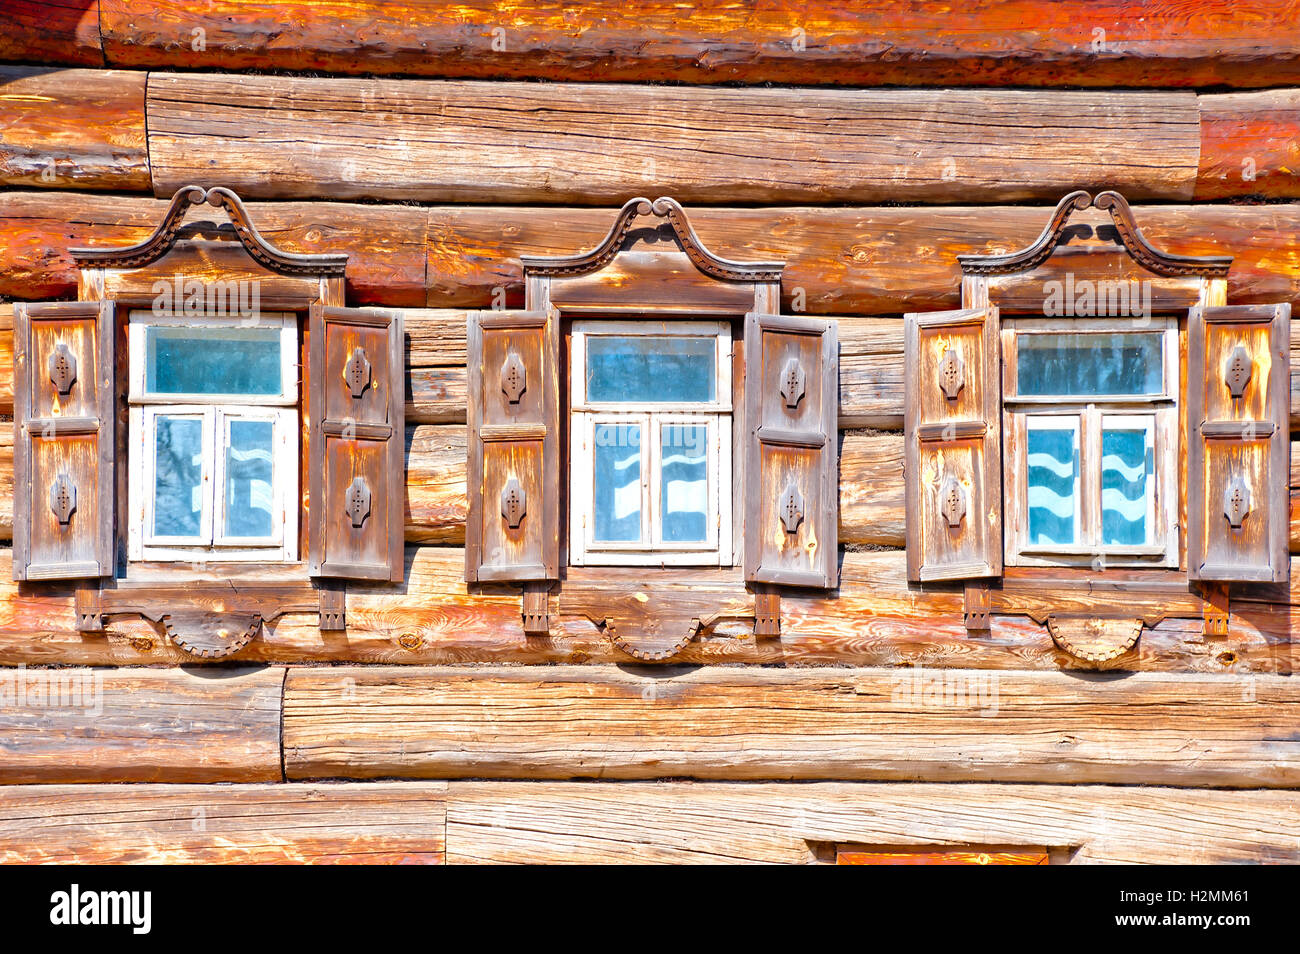 Russisches Holzhaus Traditional Russian Windows Russia Stockfotos